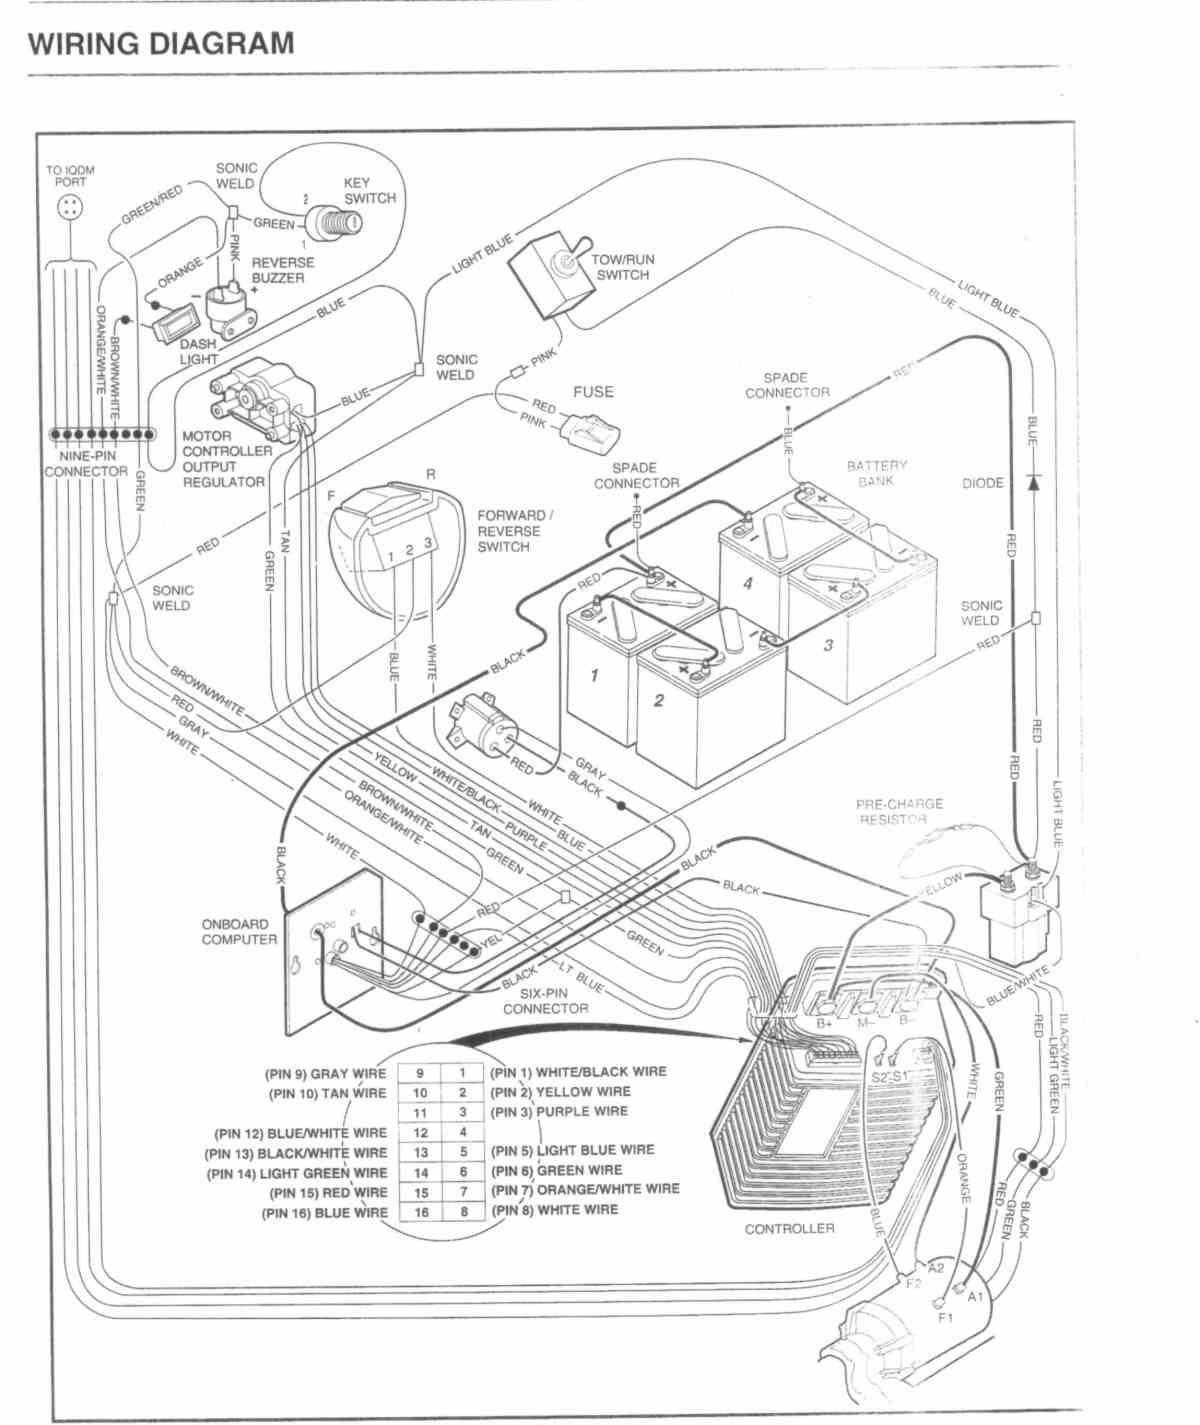 1989 1993 Club Car Forward Reverse Switch Wiring Diagram Free Ez Go Marathon Get Image About Ezgo 16 Golf Cart Battery At 48 Volt Charger